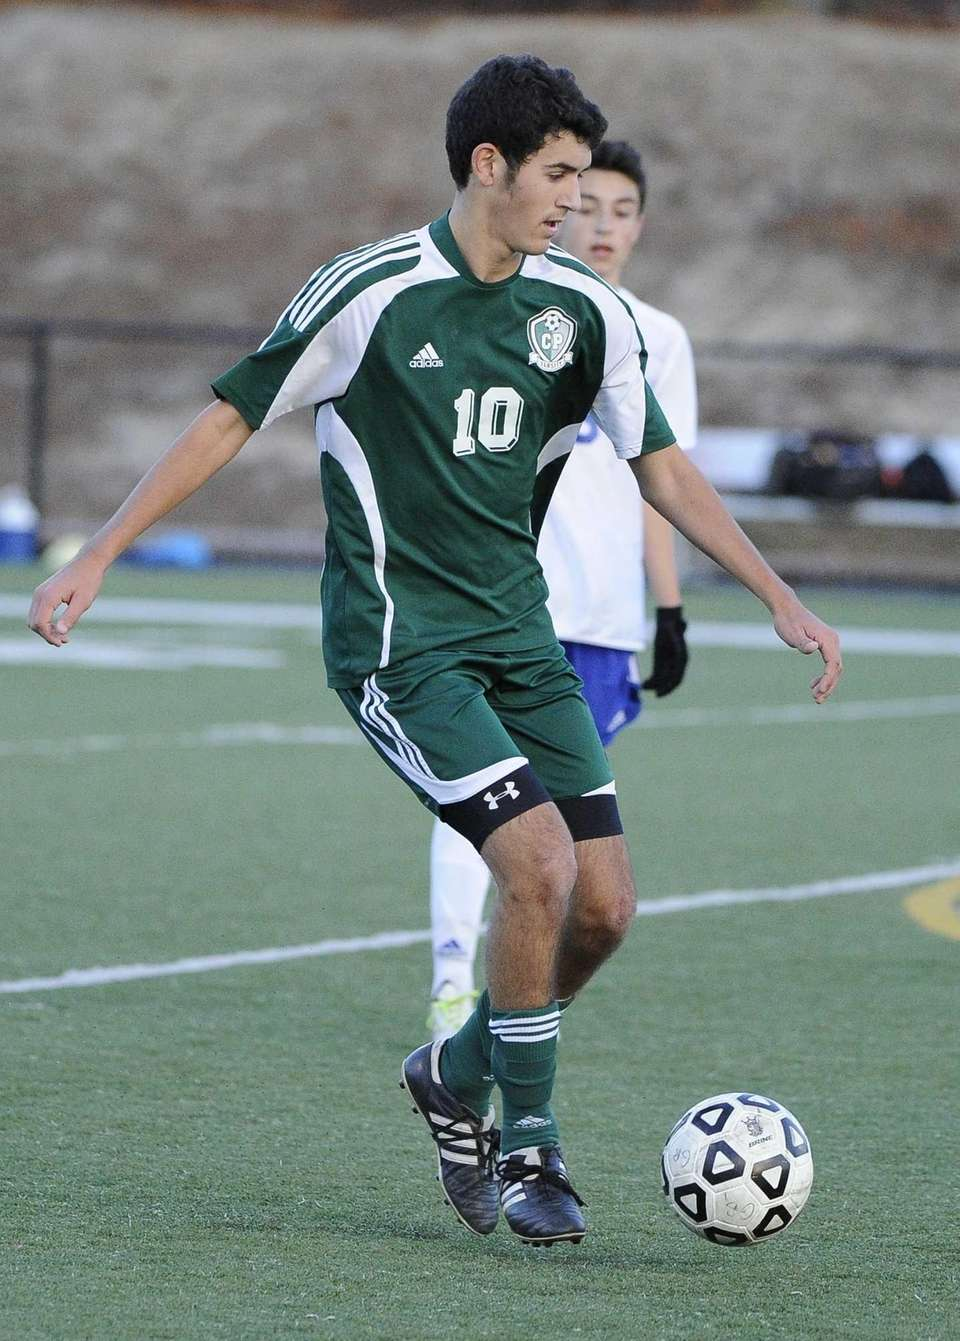 Carle Place's Billy Chiappone controls the ball against